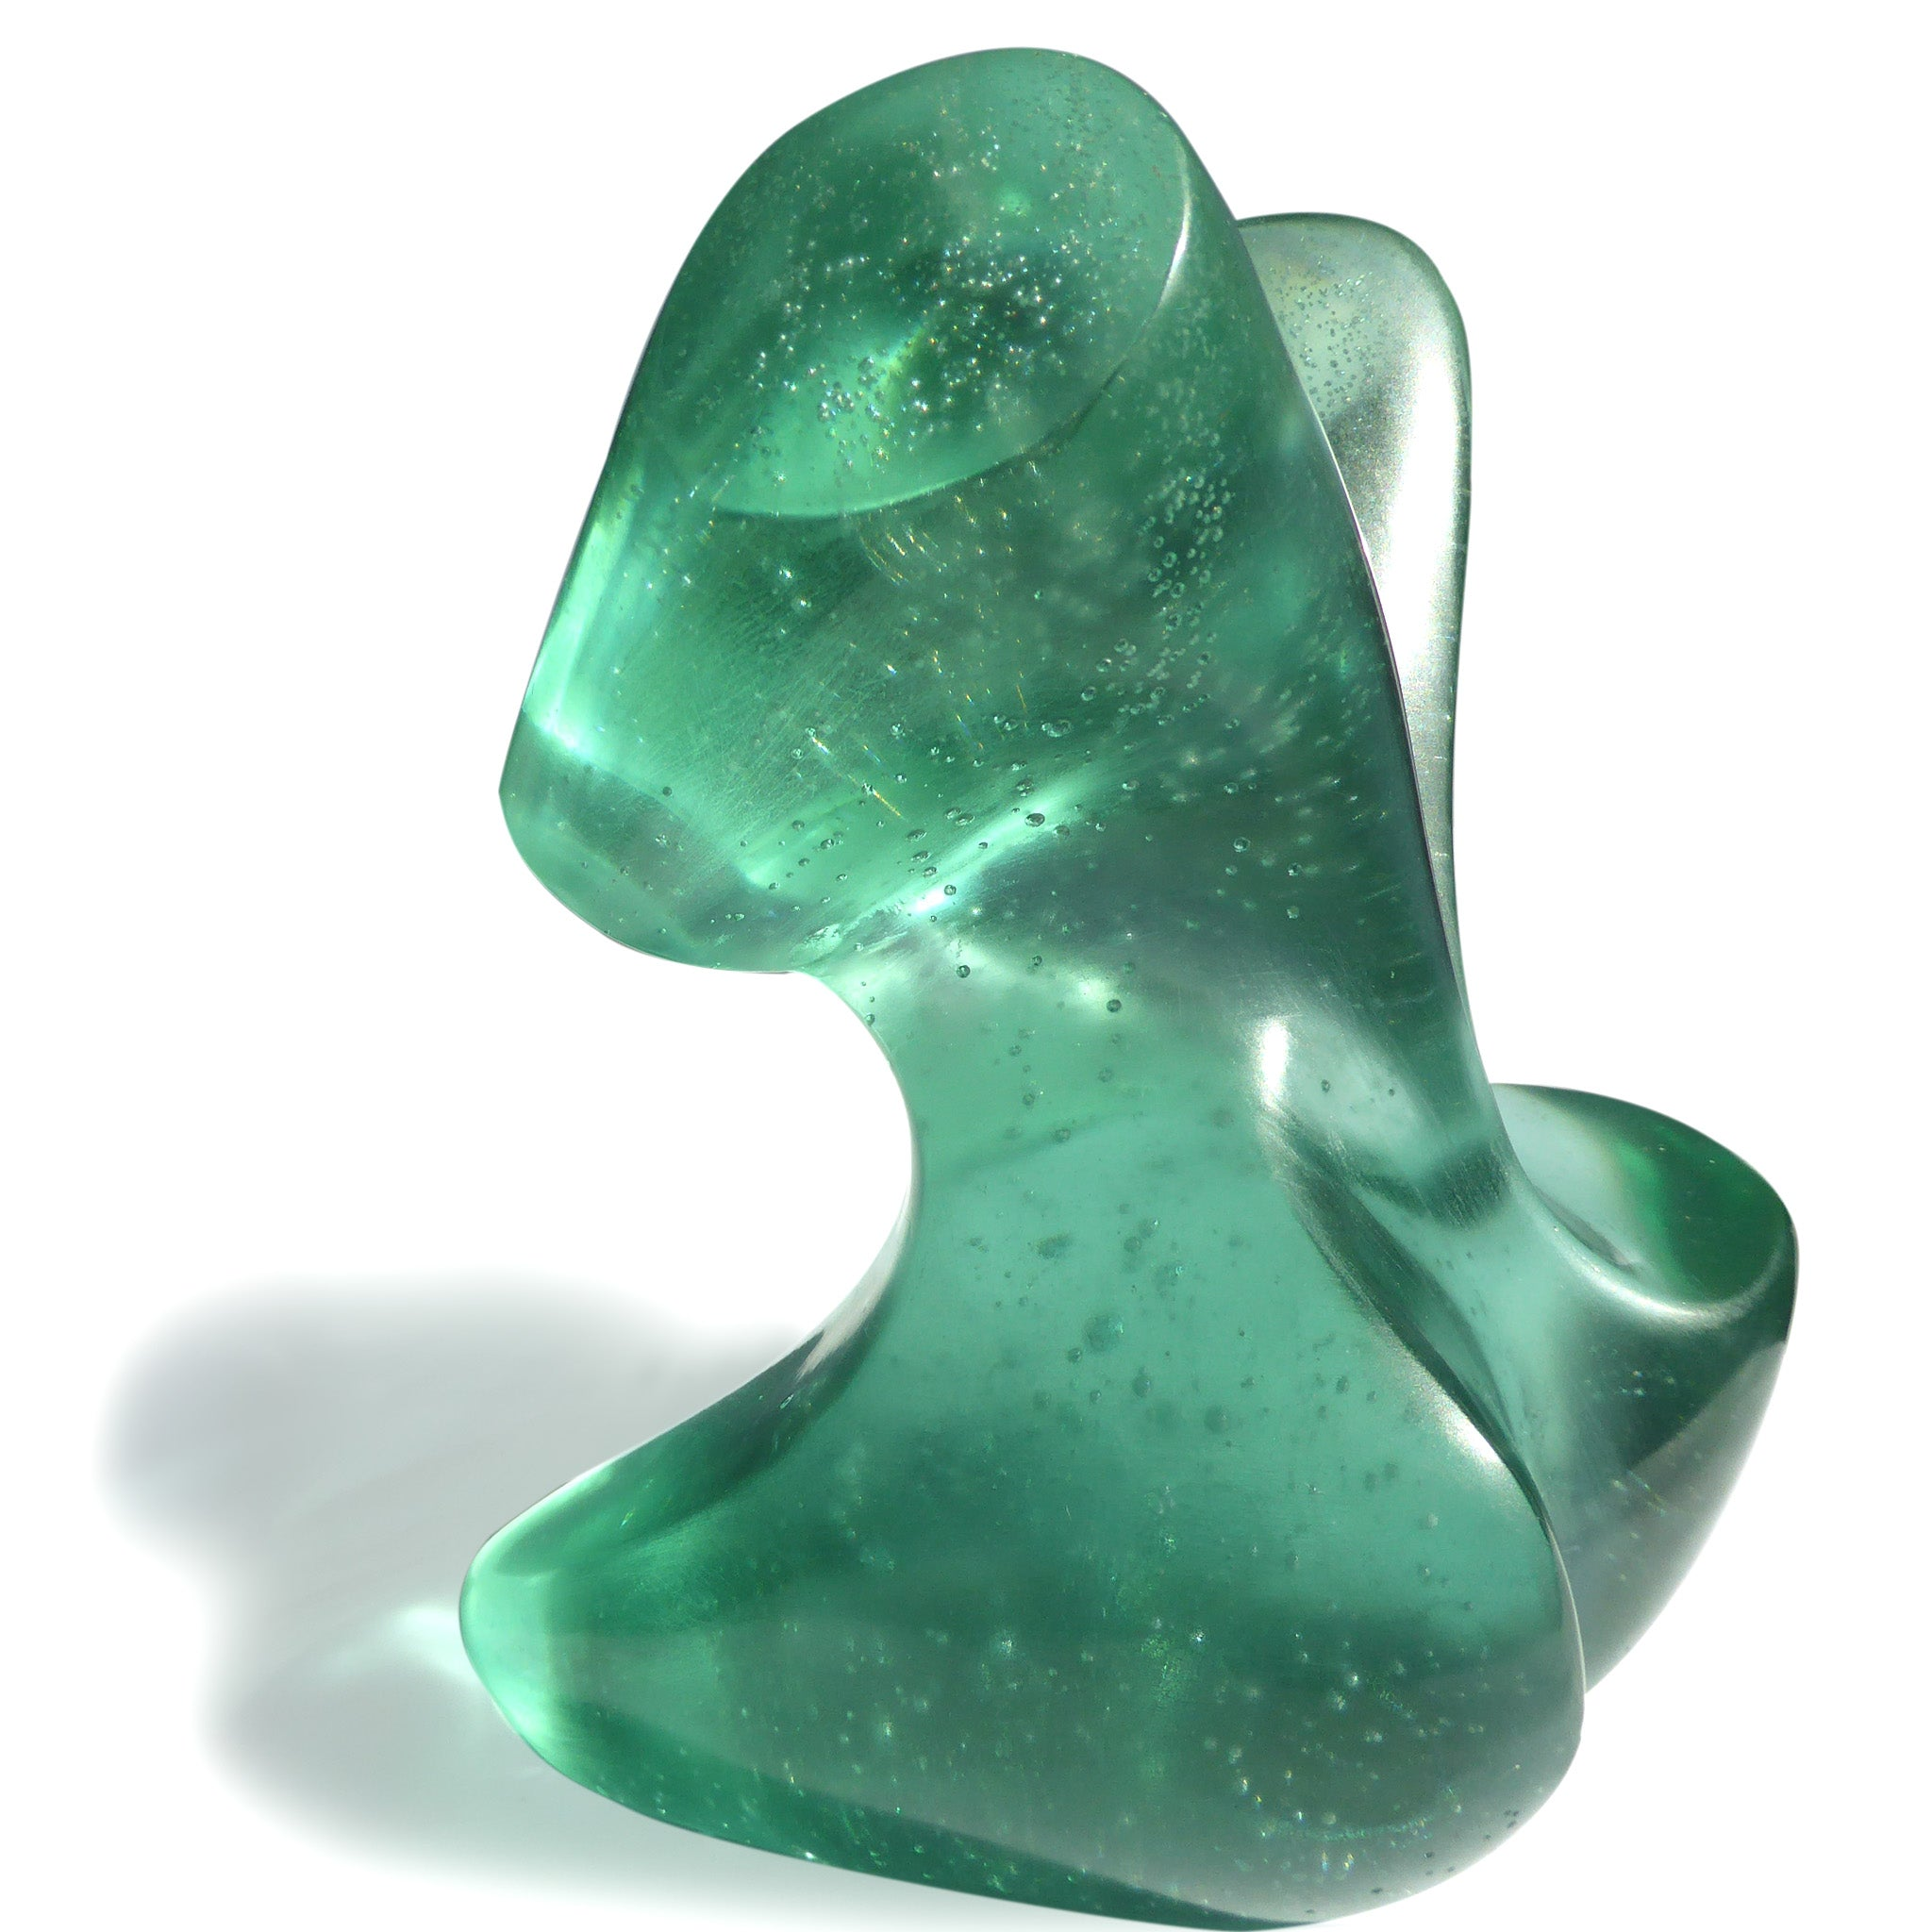 Abstract female figurative cast glass sculpture by Stephen Williams.